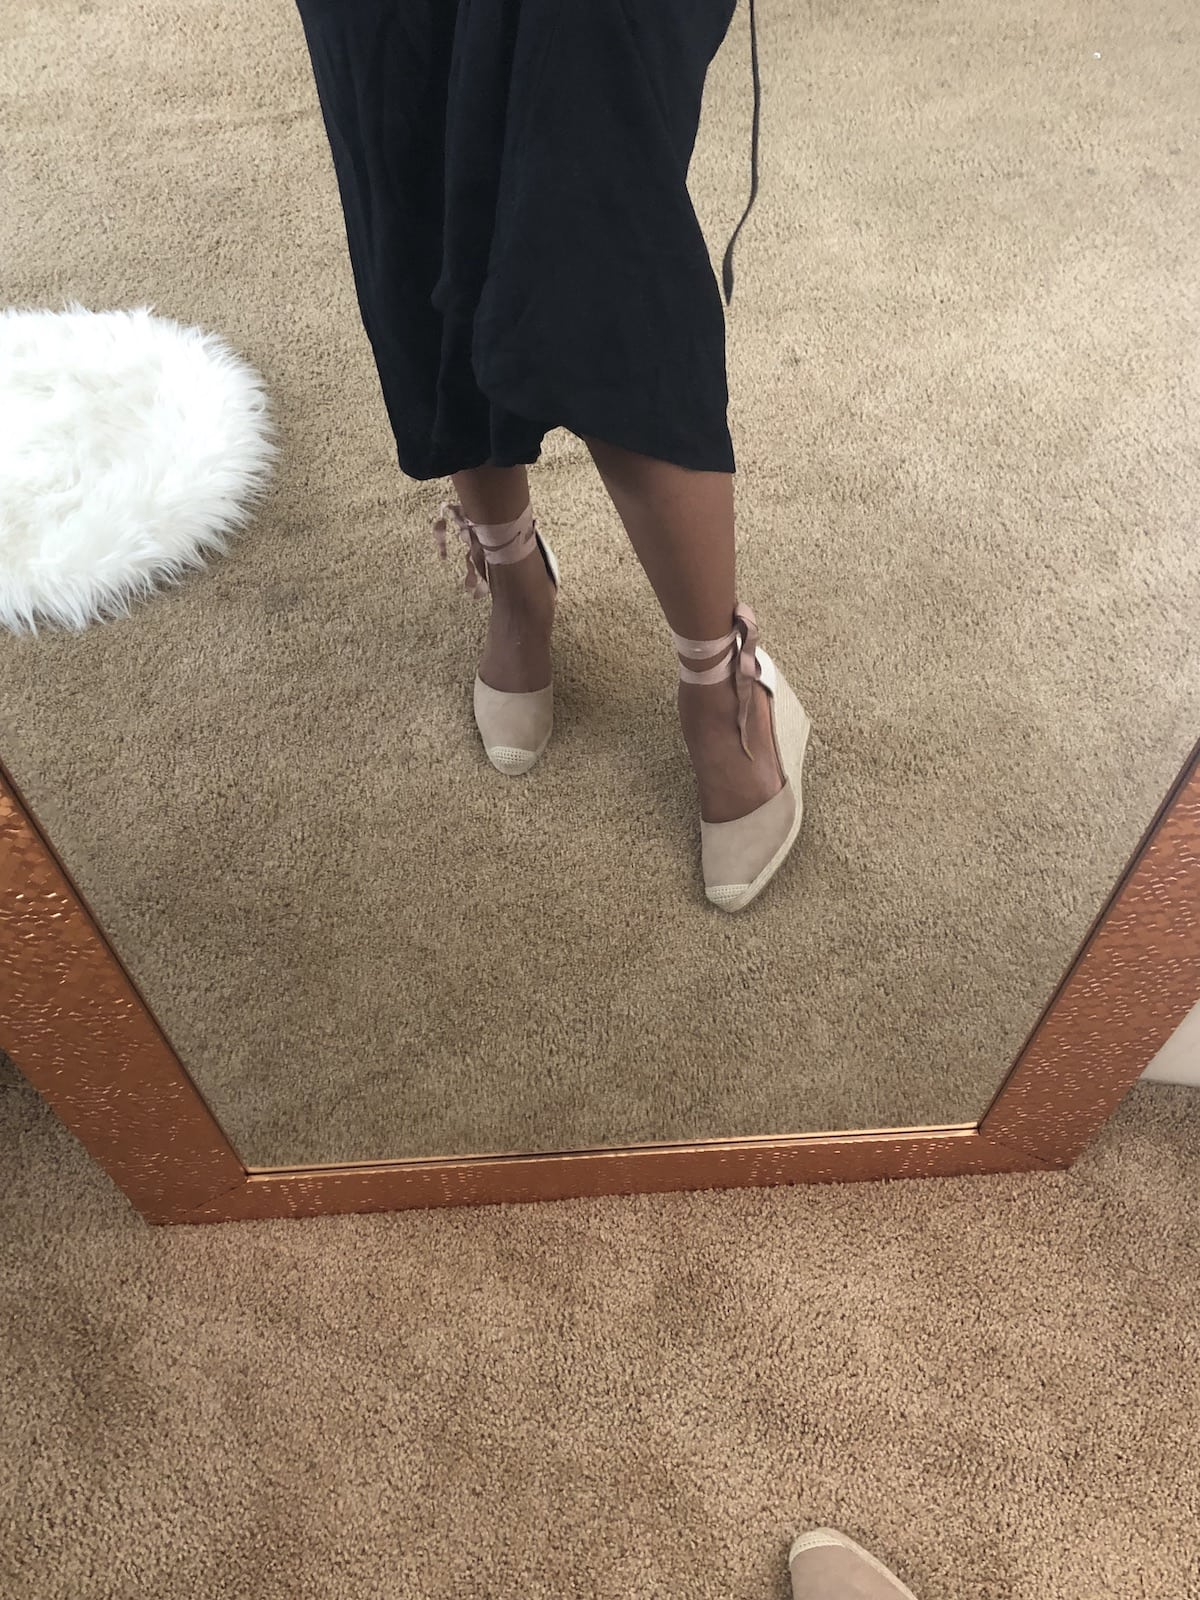 Mirror shoefie in JustFab dress and shoes